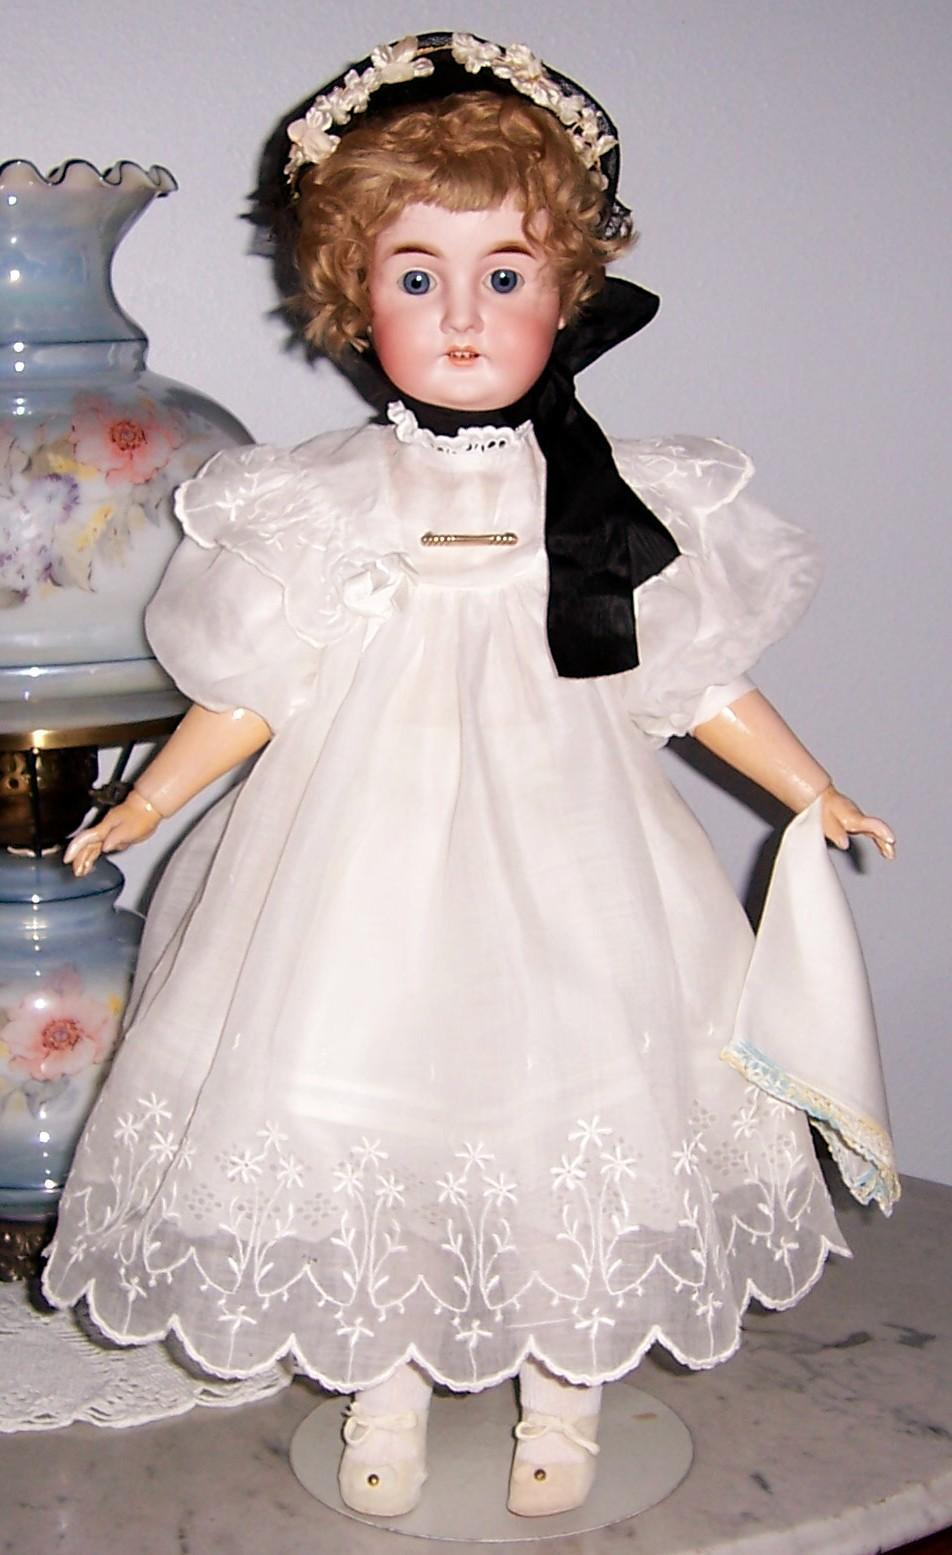 "ON SALE 26"" Karl Hartman Antique German Bisque Head Doll. Beautifully Dressed. Display Ready."